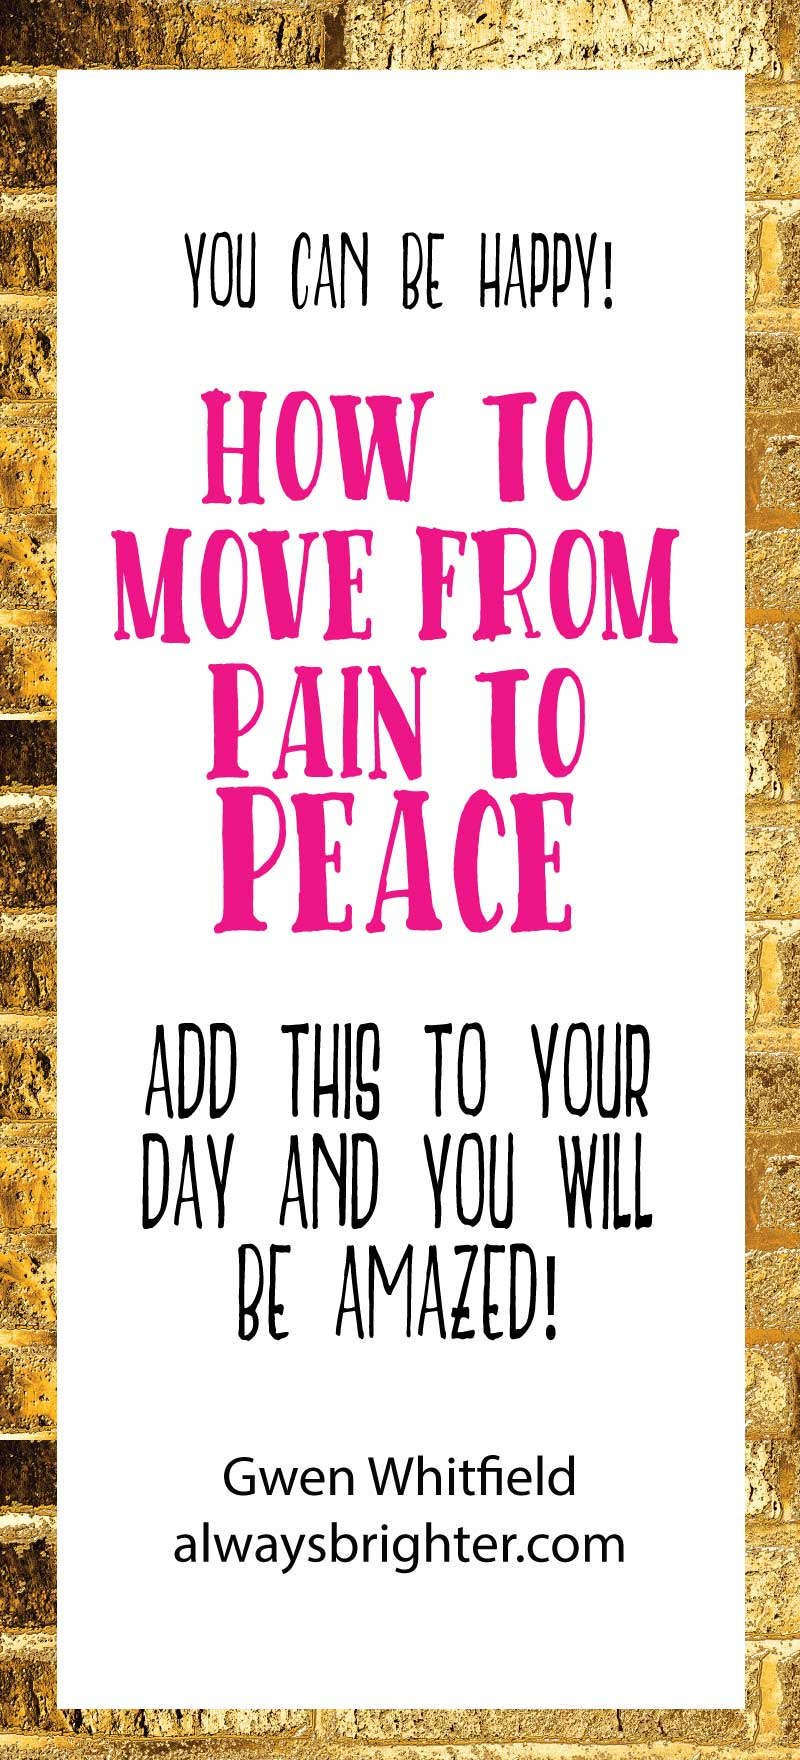 Pain sucks, but by adding this simple practice to your day, you can move through that pain and create a more peaceful and joyful life.